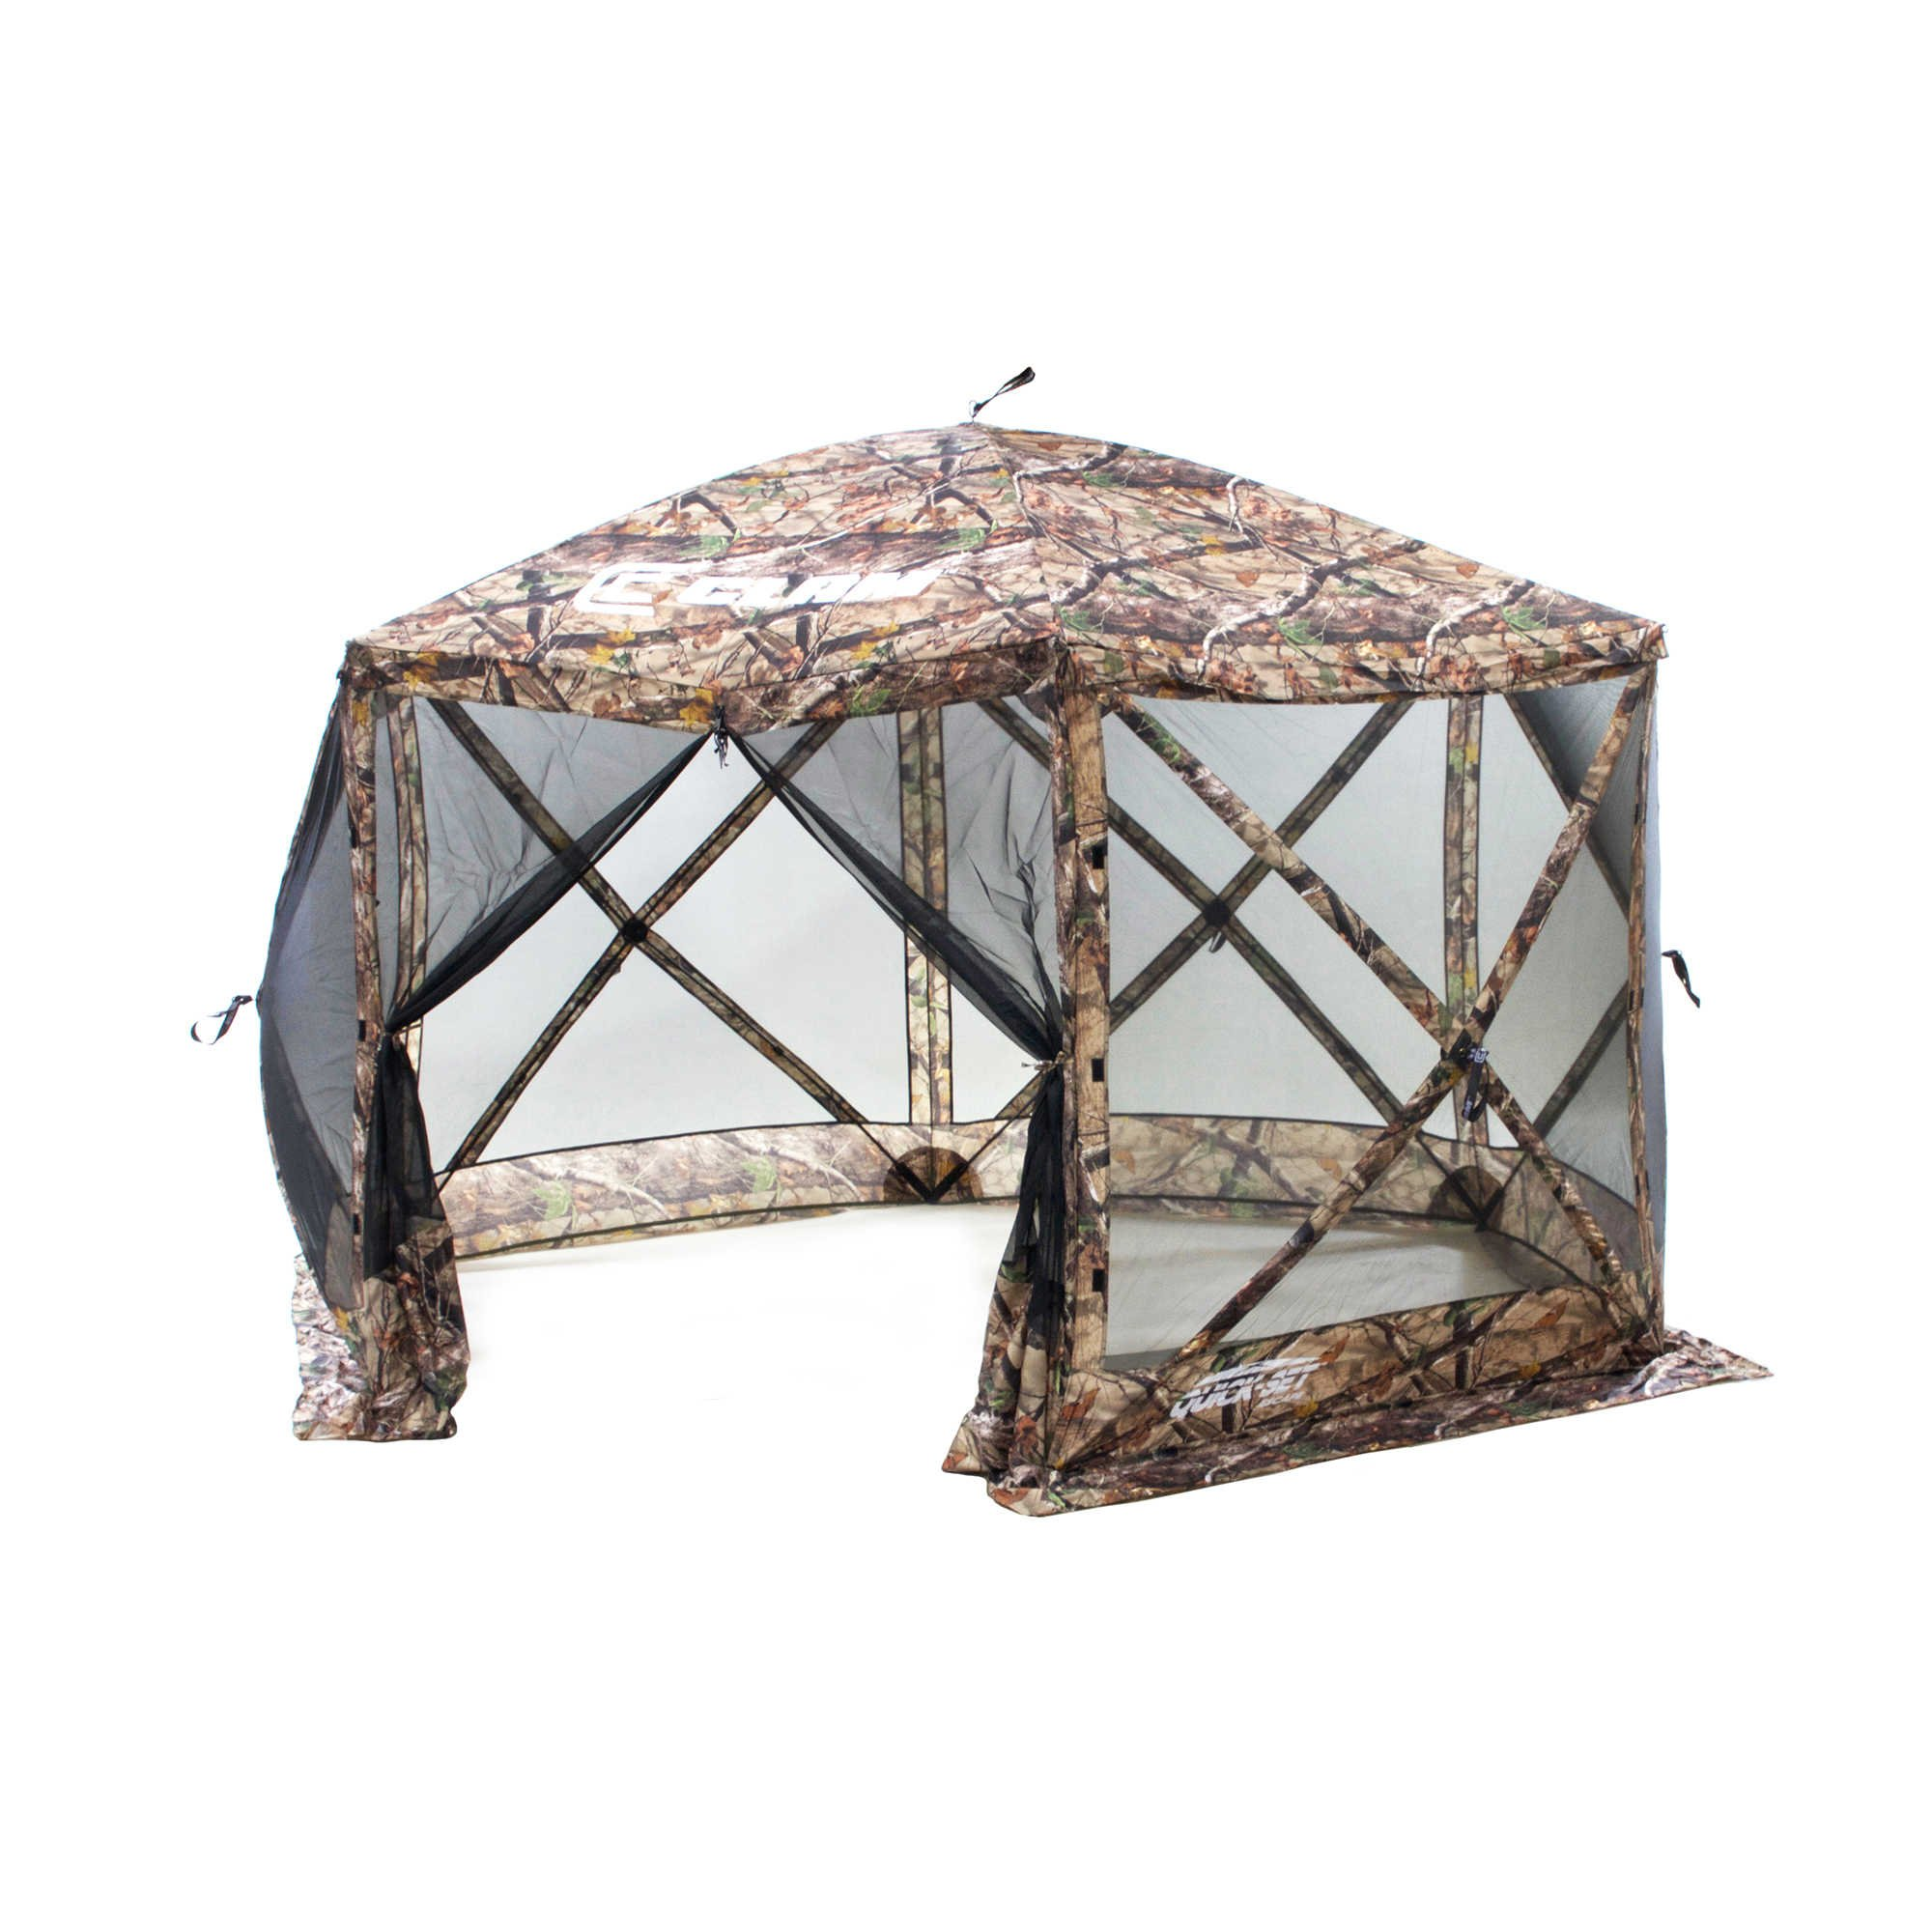 Clam Outdoors Quick-Set Escape 6-Sided Screen Shelter with Wind Panel Flaps in Camo by Clam Outdoors (Image #1)